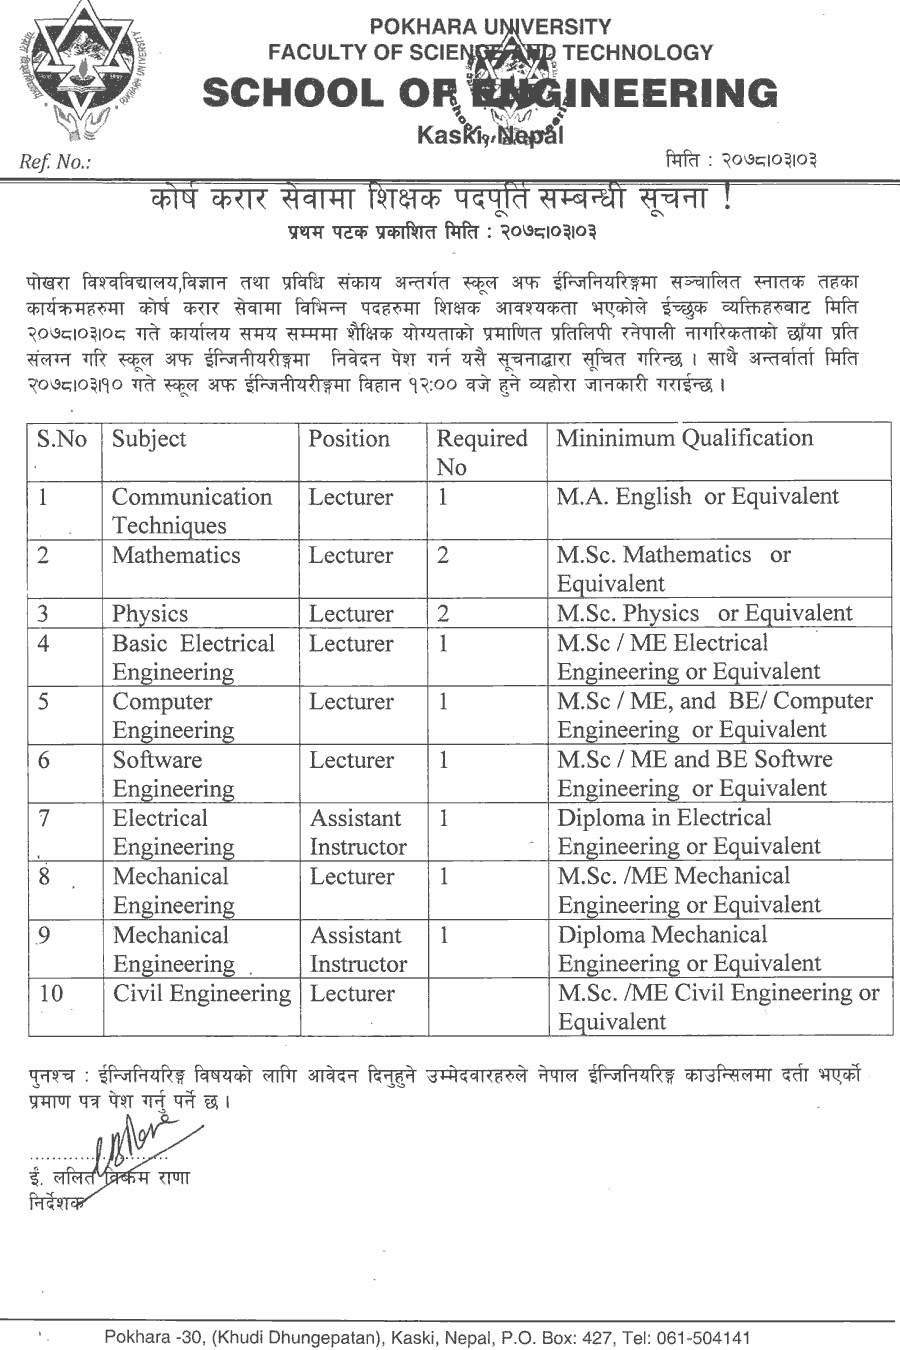 Pokhara-University-School-of-Engineering-Vacancy-for-Lecturer-and-Assistant-Instructor